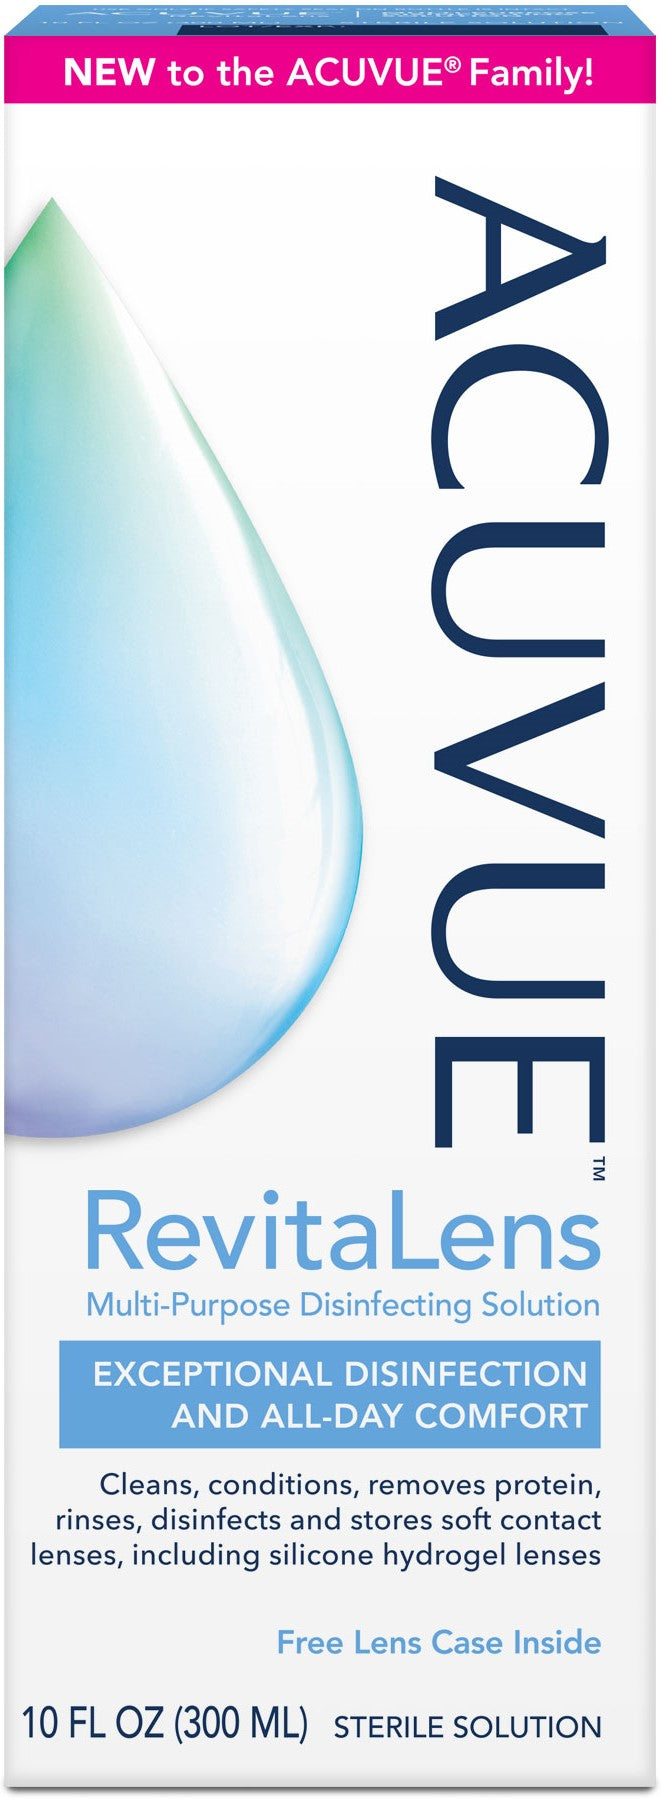 ACUVUE RevitaLens Multi-Purpose Disinfecting Solution 10 oz